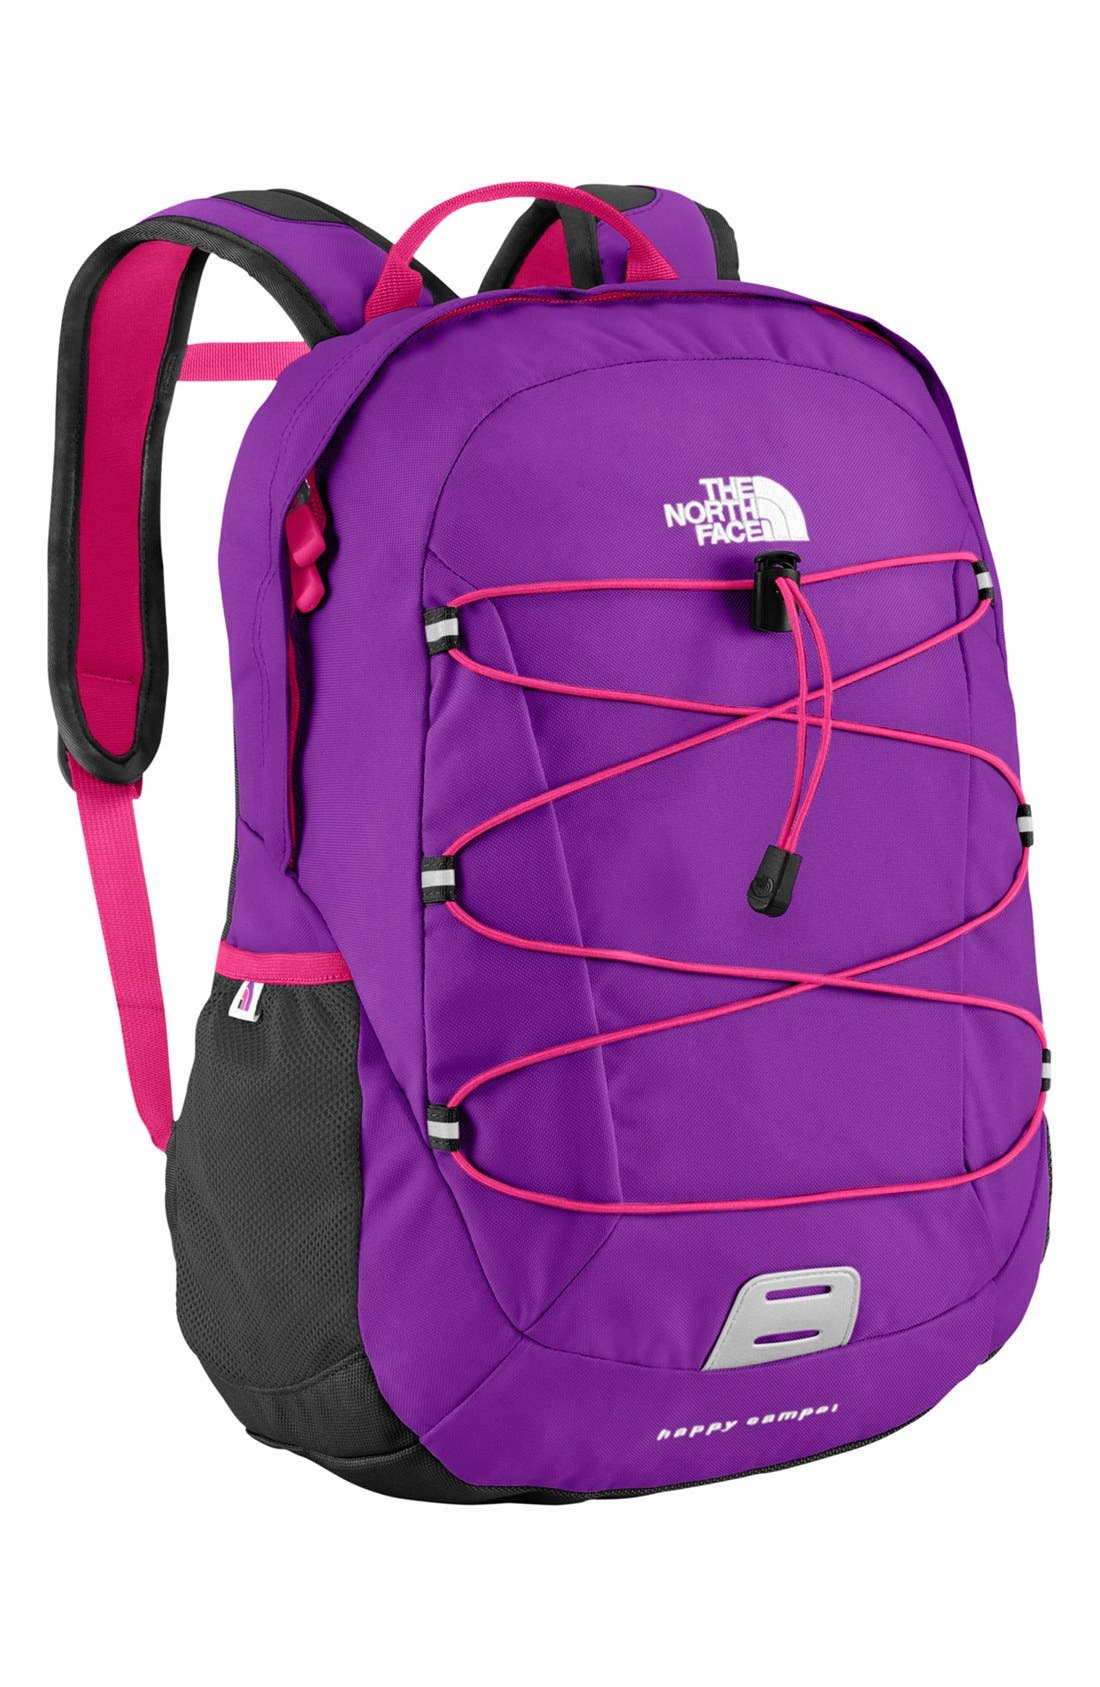 Main Image - The North Face 'Happy Camper' Backpack (Girls)